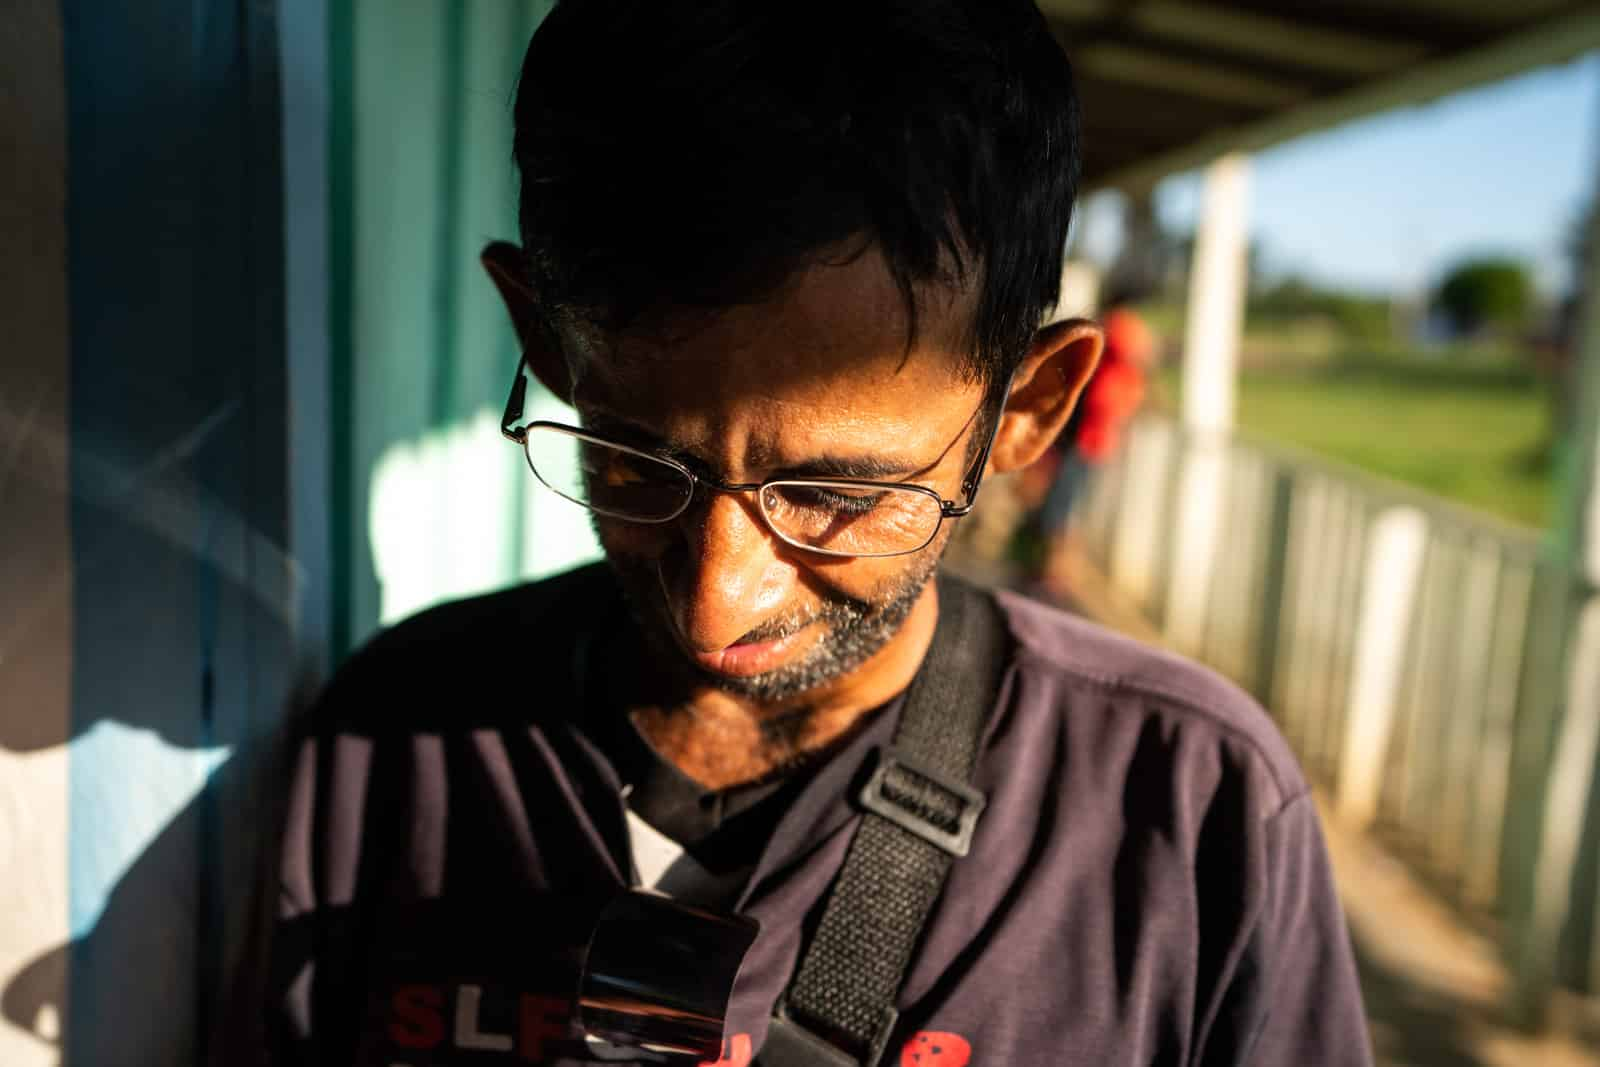 OneSight's mobile eye care clinic in the Brazilian Amazon - Alex receives his glasses - Lost With Purpose travel blog